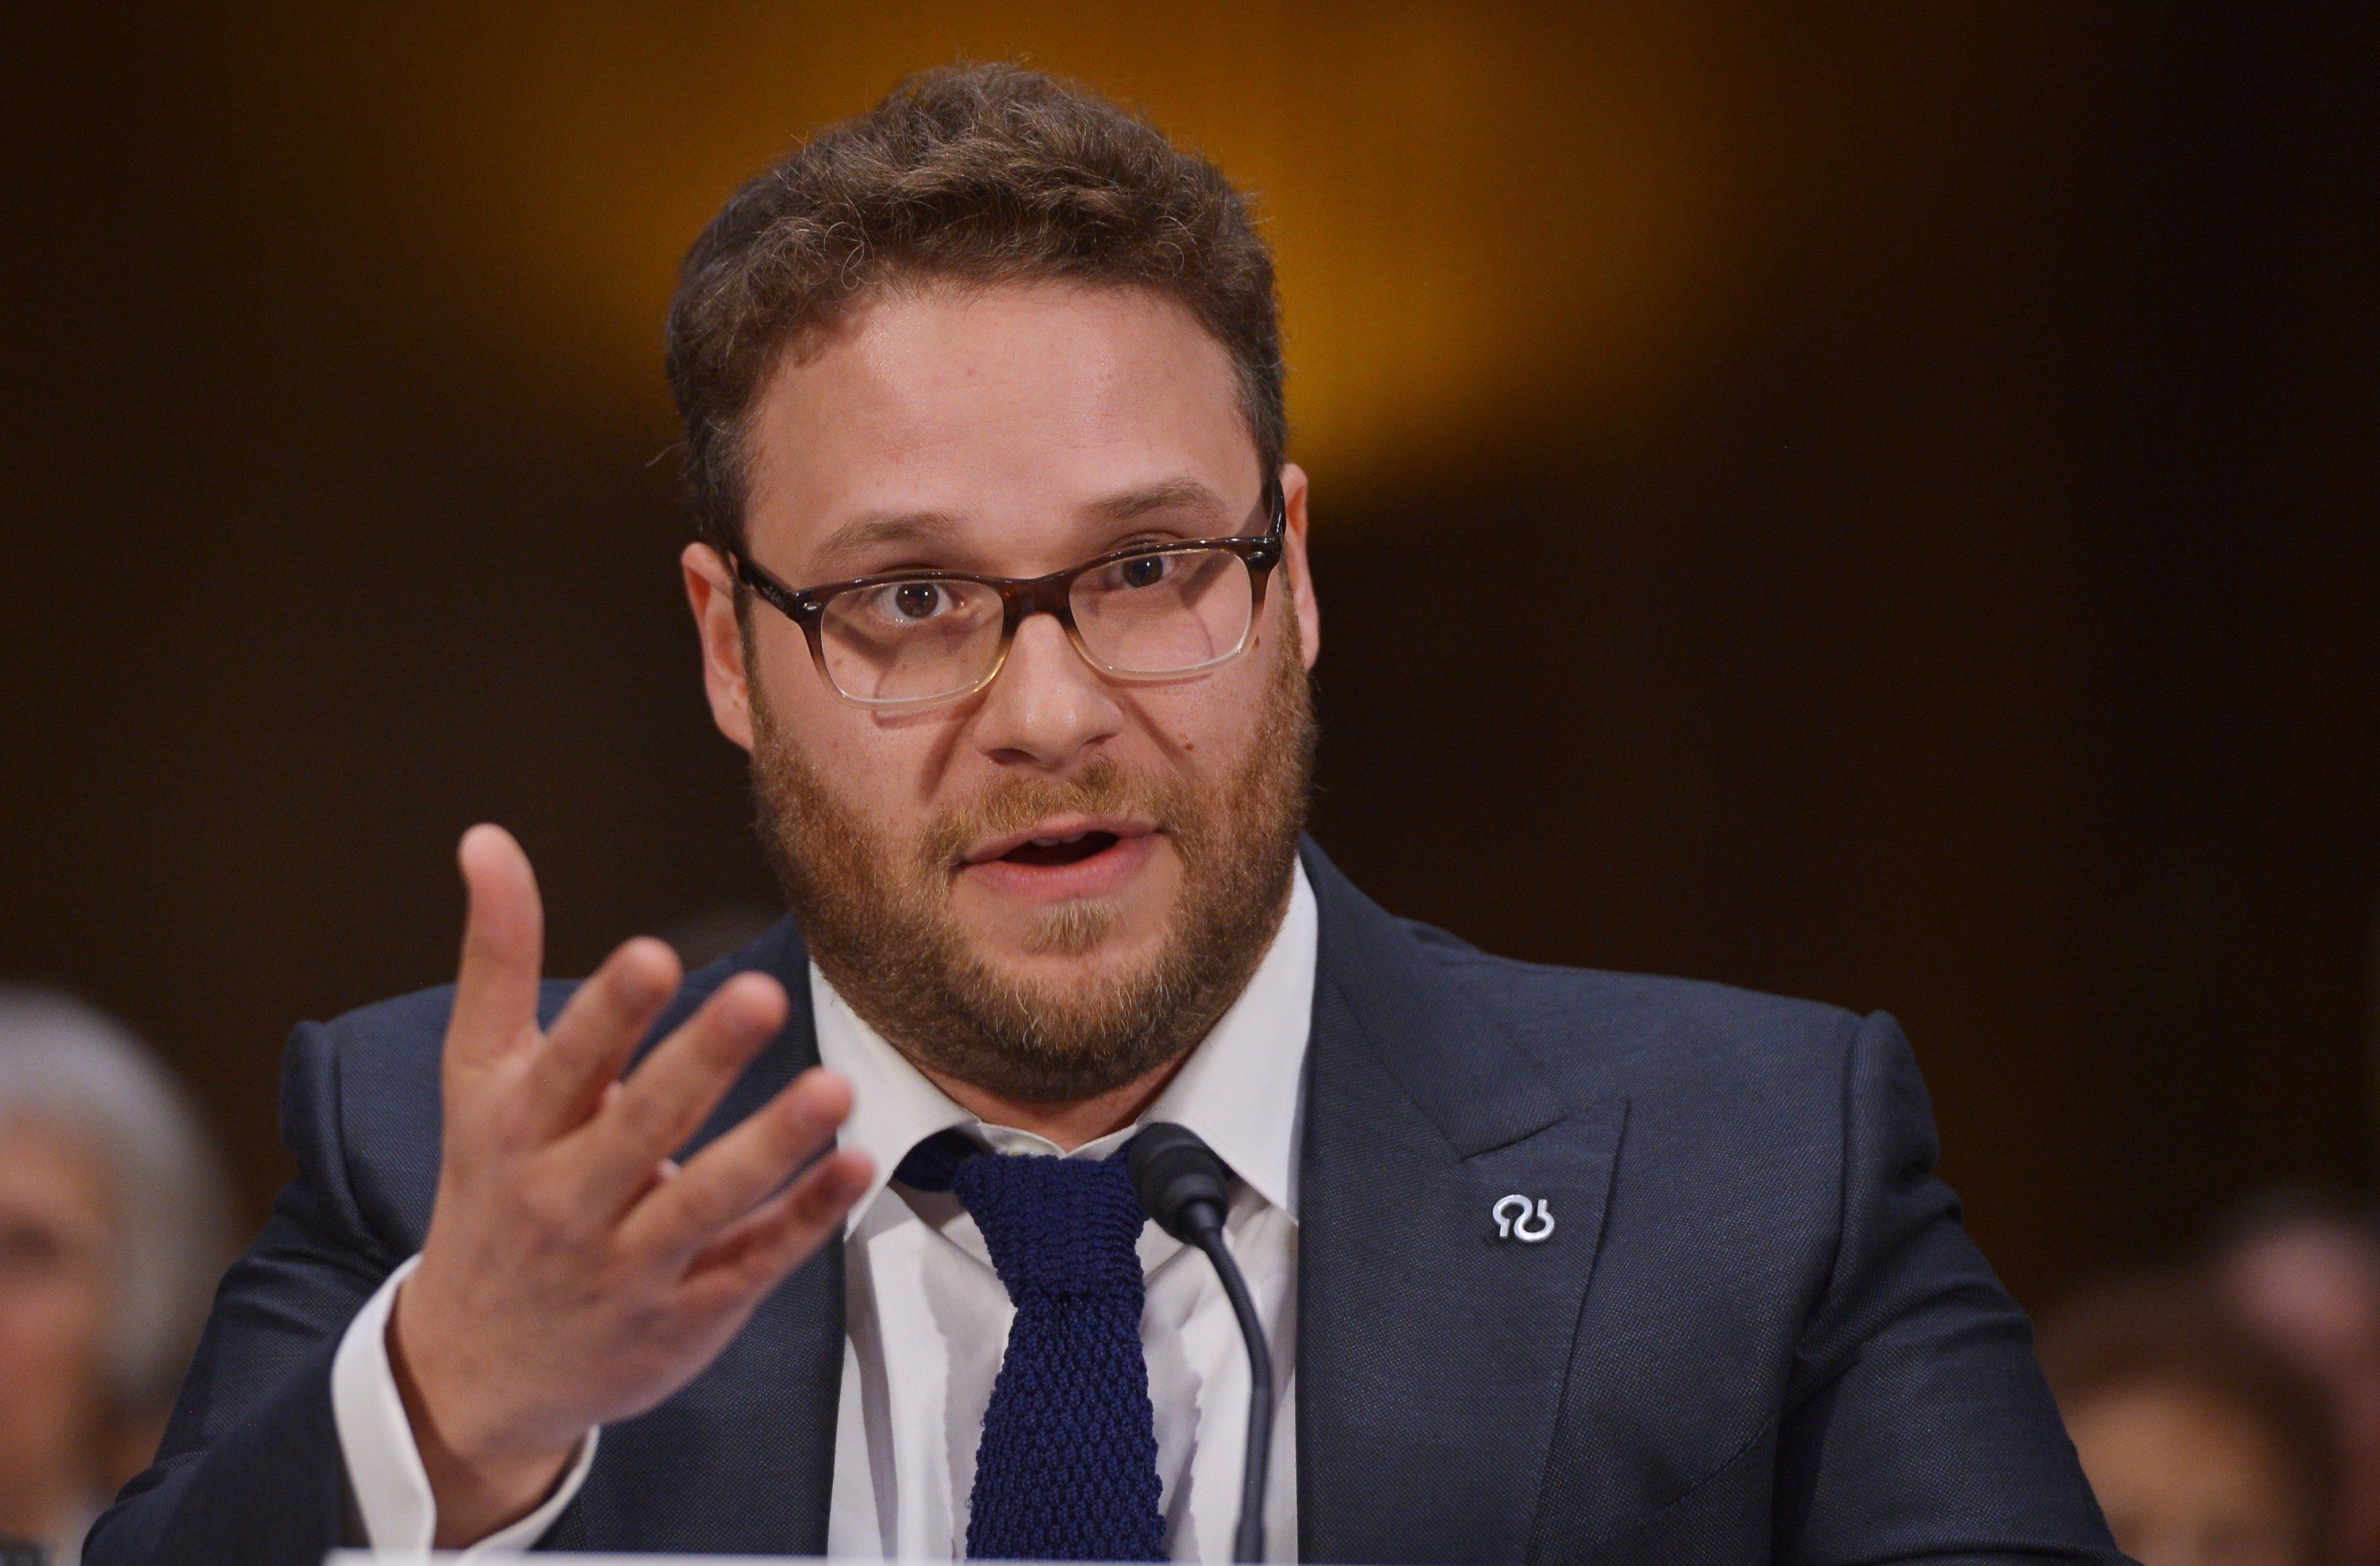 Seth Rogen got into a Twitter dispute with right-wing radio host Bill Mitchell this week.